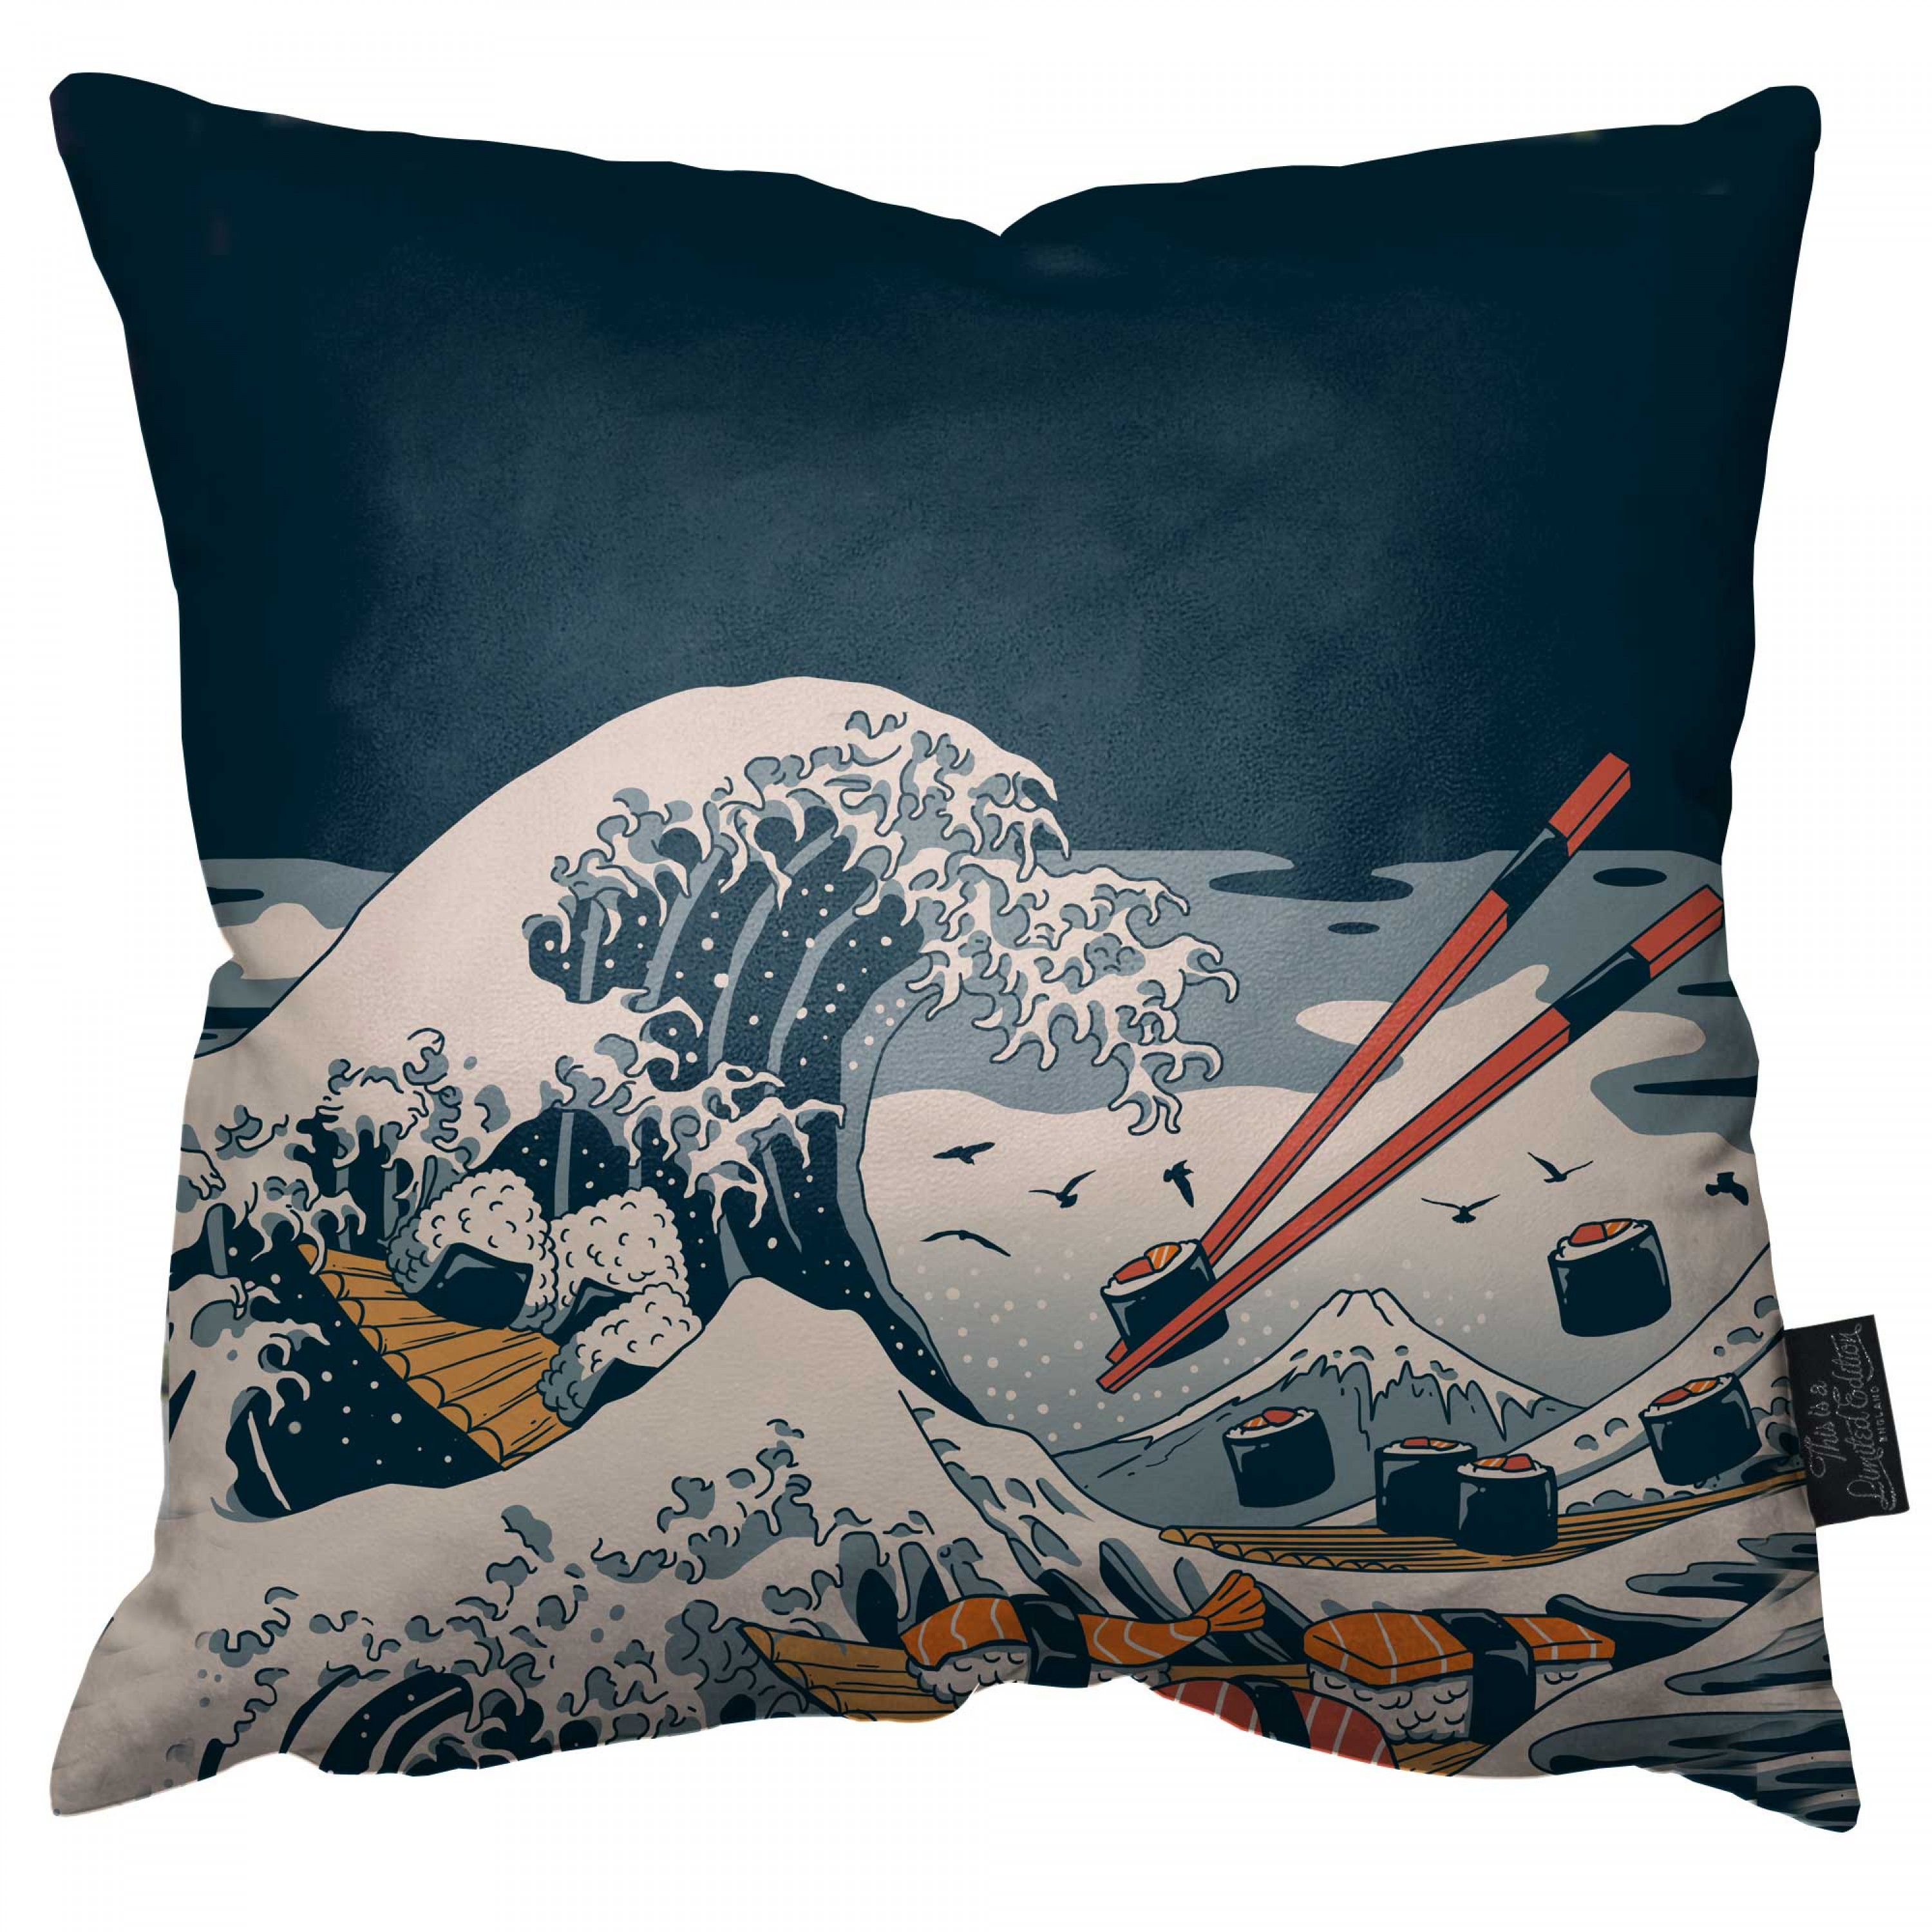 The Great Wave of Sushi Pillow